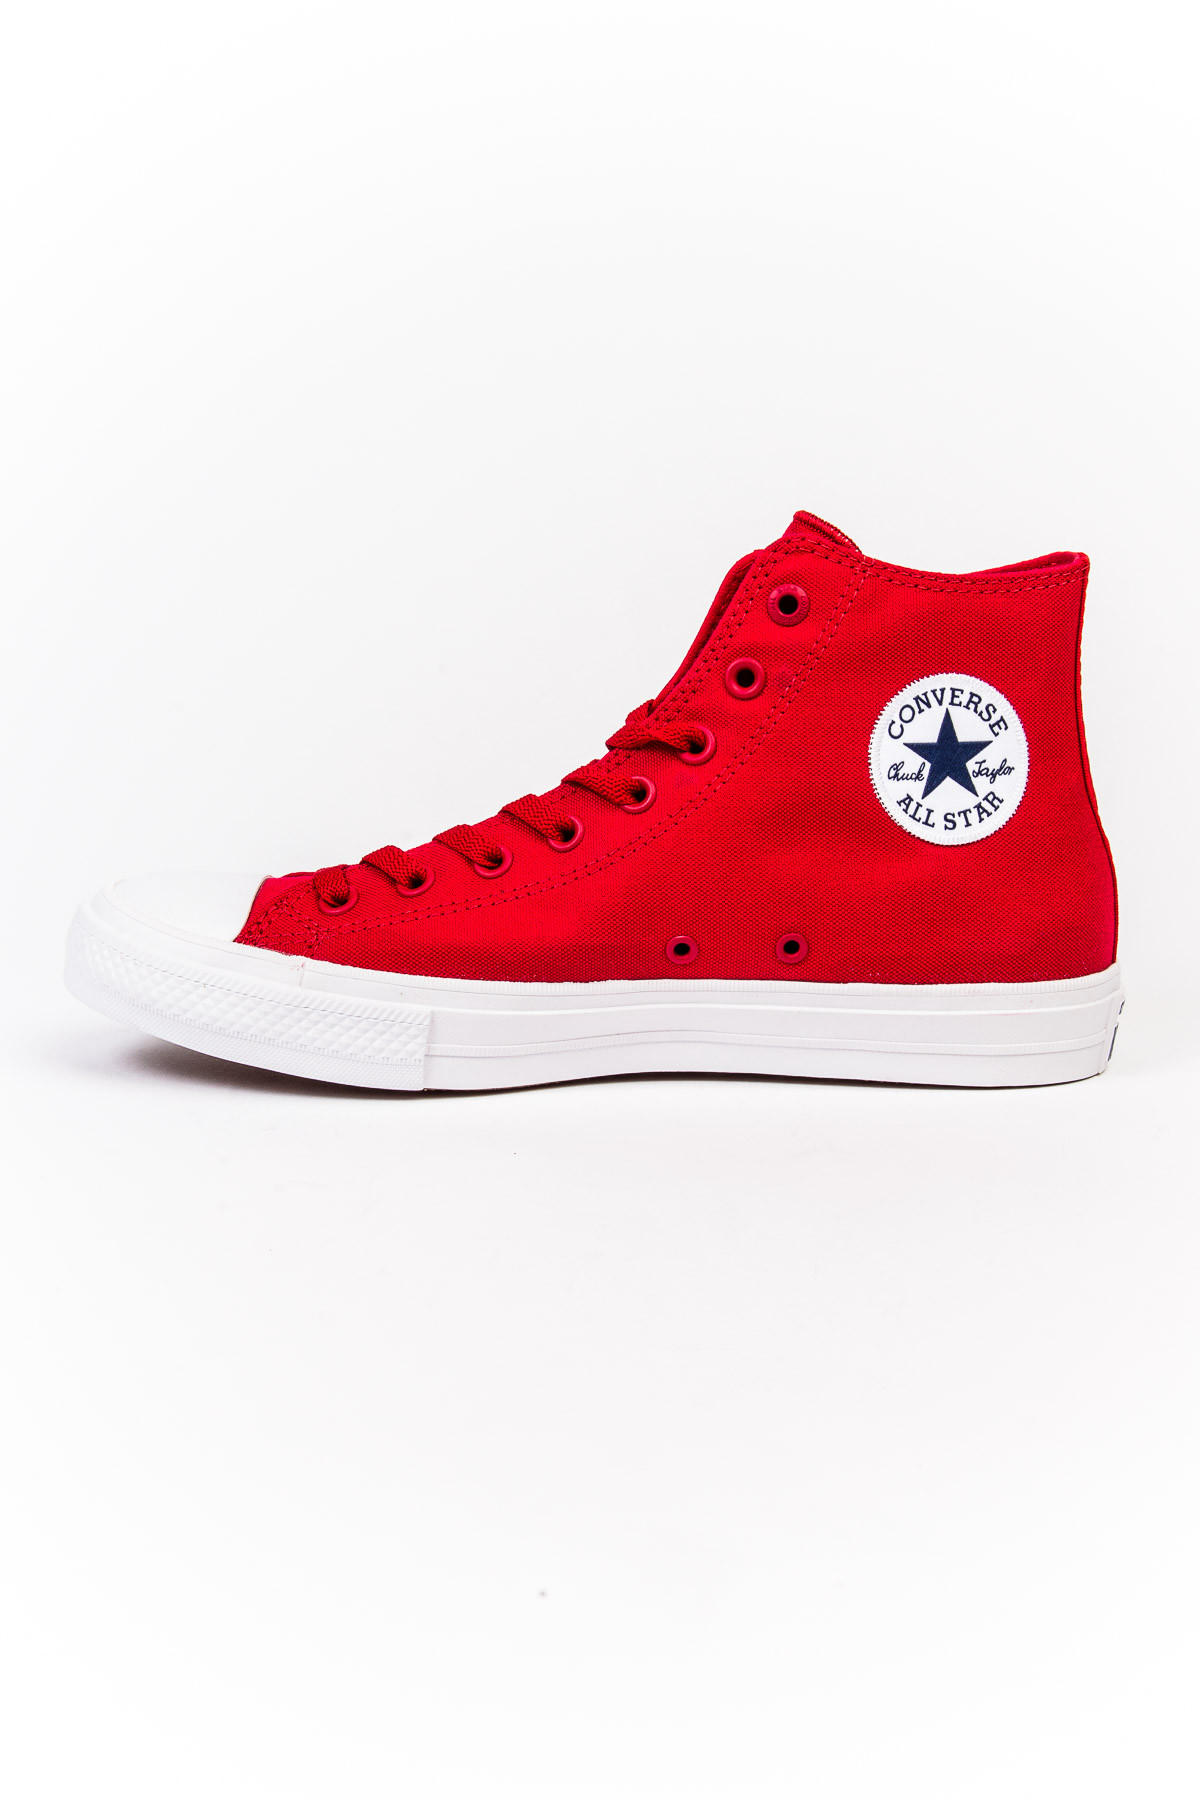 0ed2ed2a68bef4 Converse Chuck Taylor All Star II Red Hi from Probus